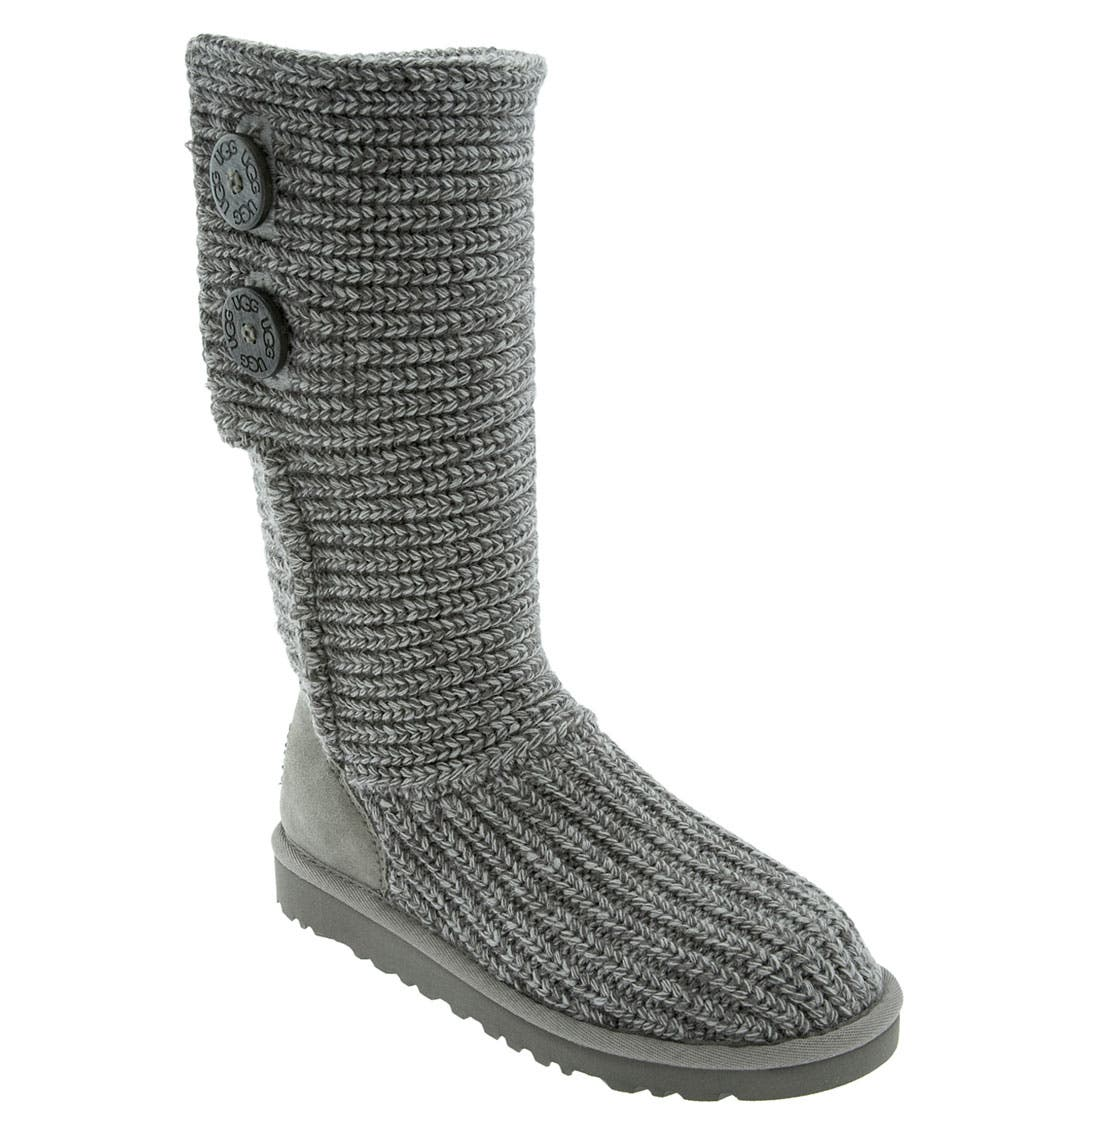 Main Image - UGG® 'Cardy' Crochet Boot (Toddler, Little Kid & Big Kid)